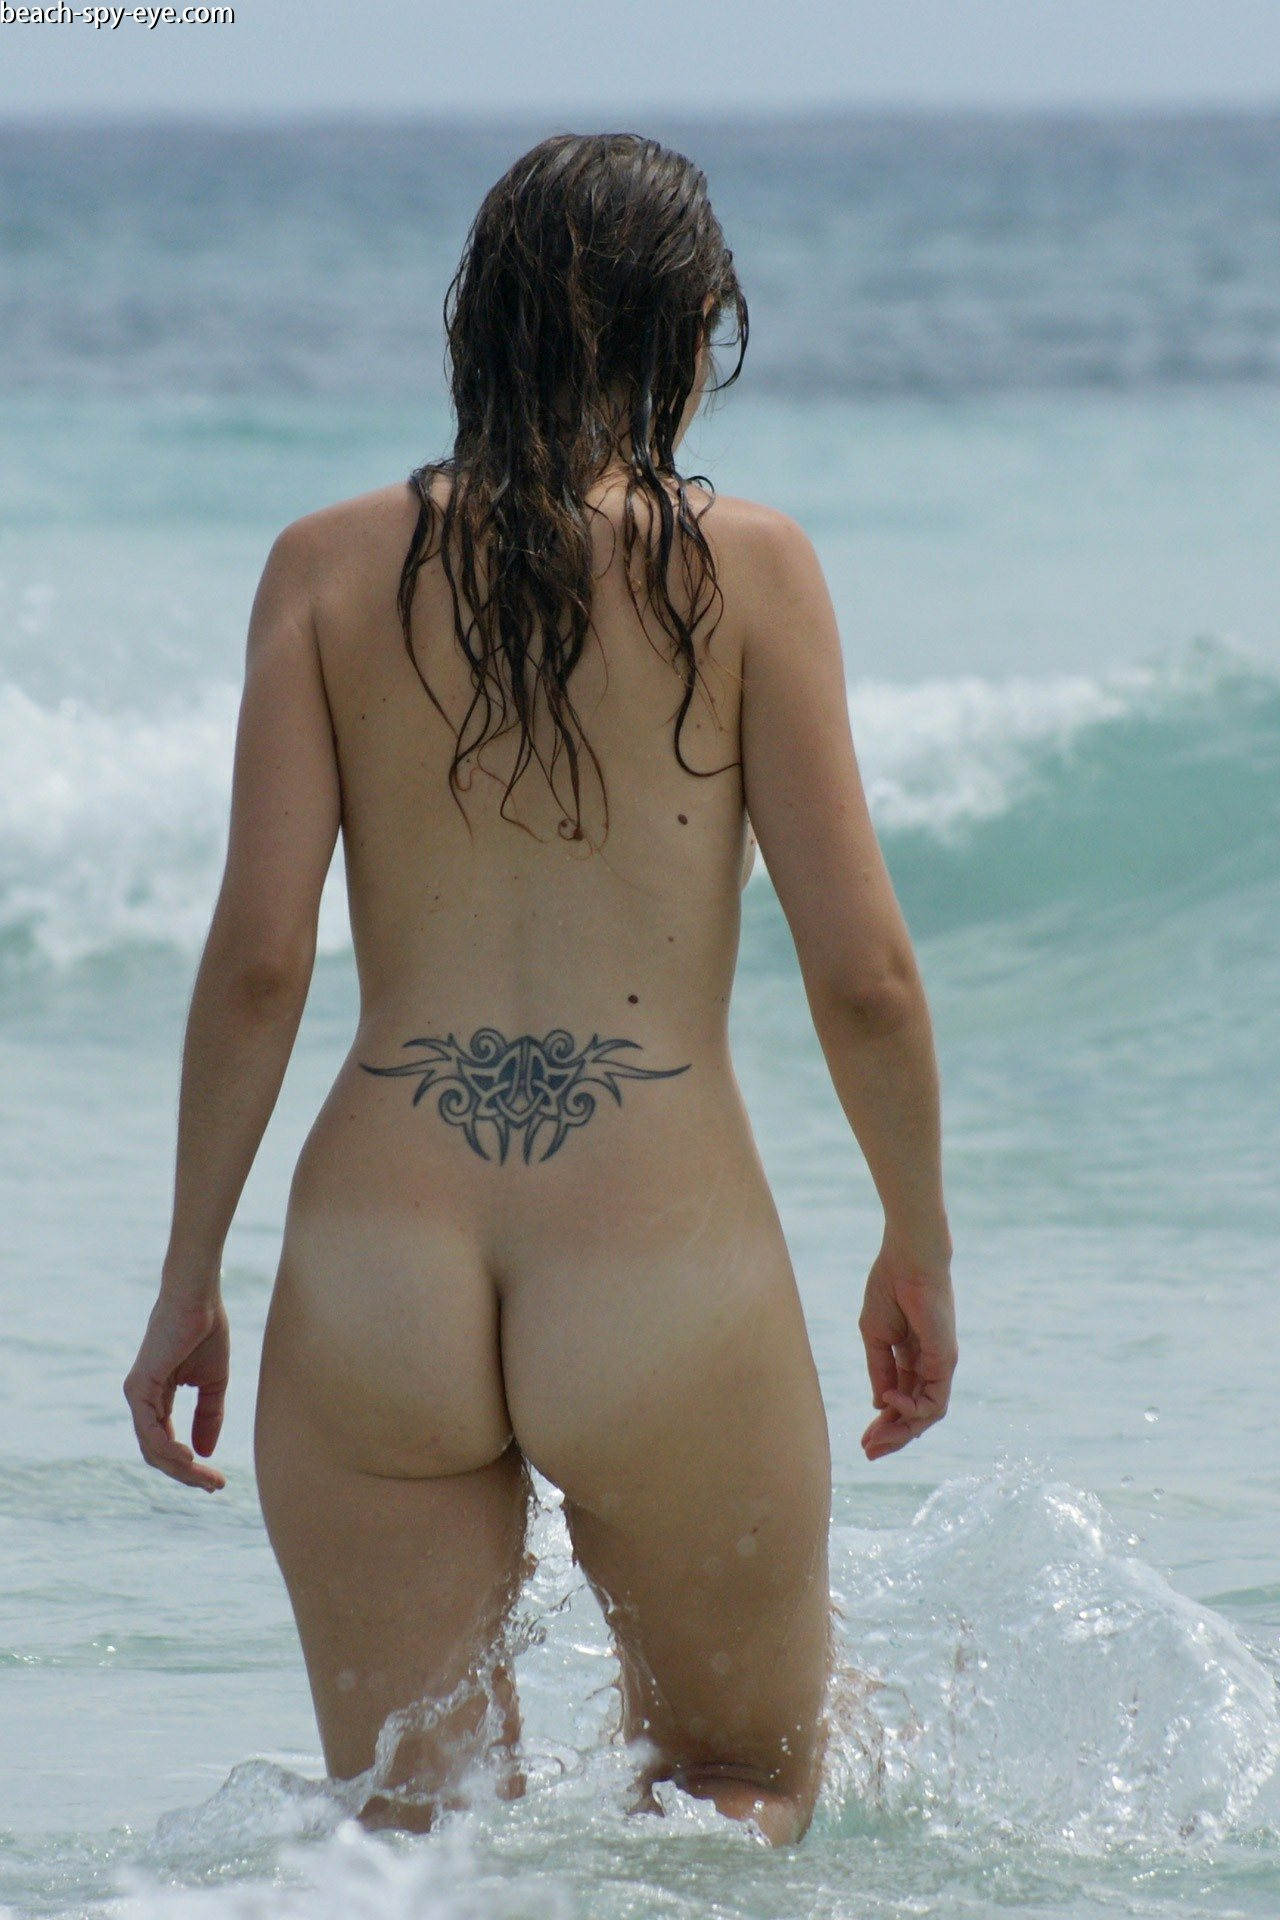 https://pbs-0.adult-empire.com/39/3926/beach_nude_women-6155/1-beach_nude_women.jpg